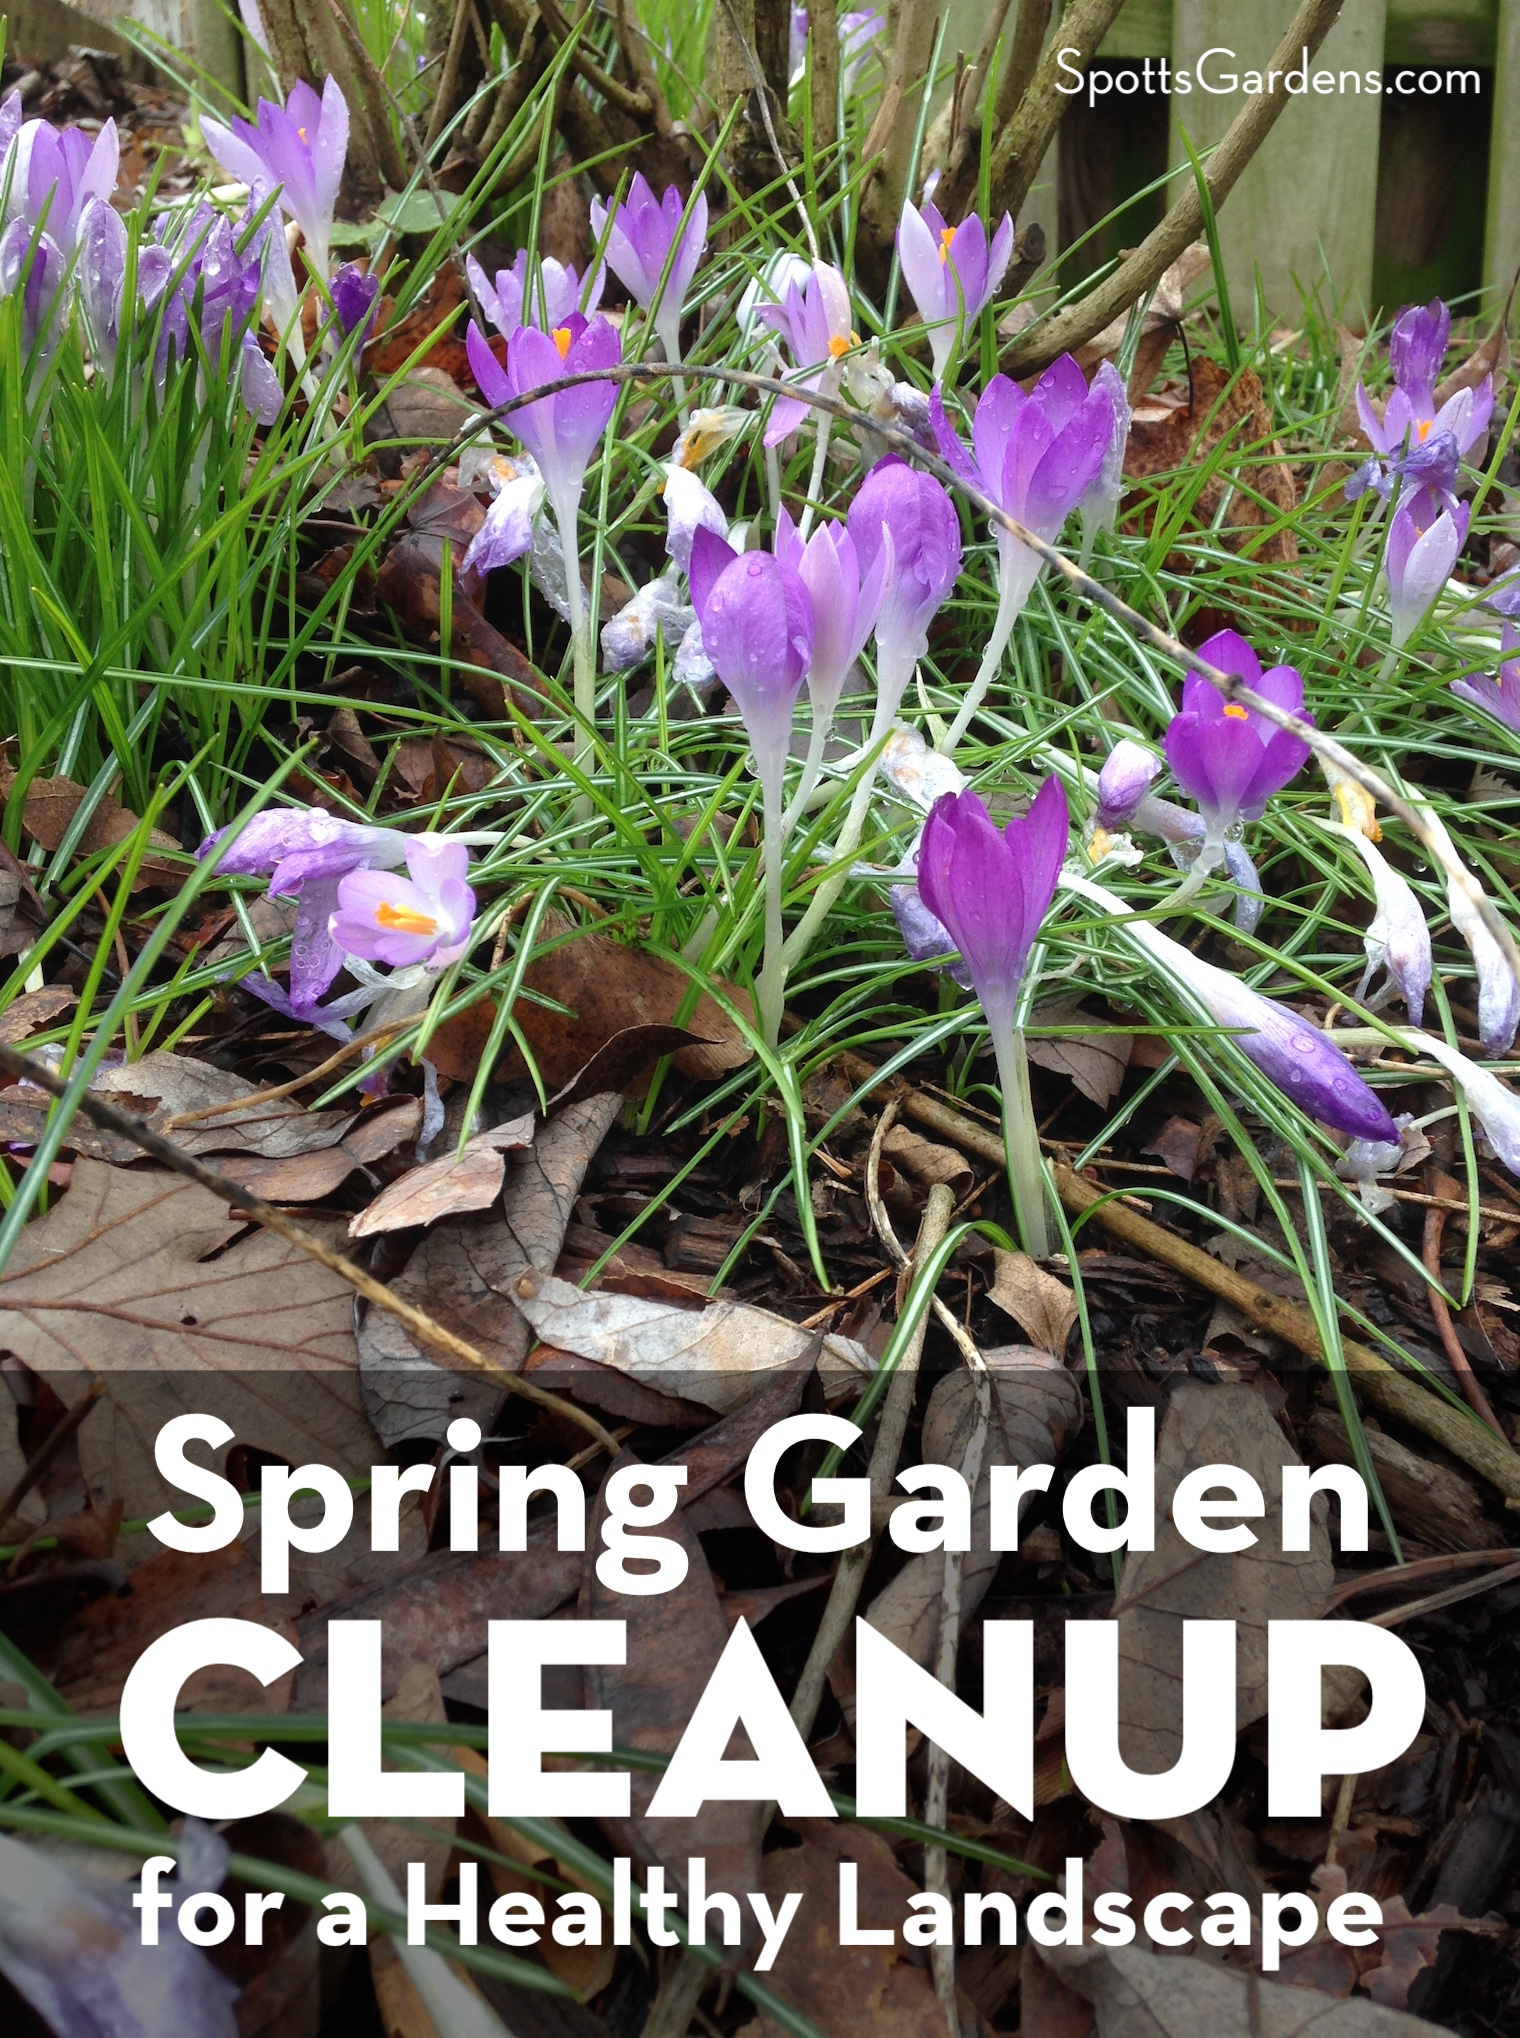 Spring Garden Cleanup for a Healthy Landscape